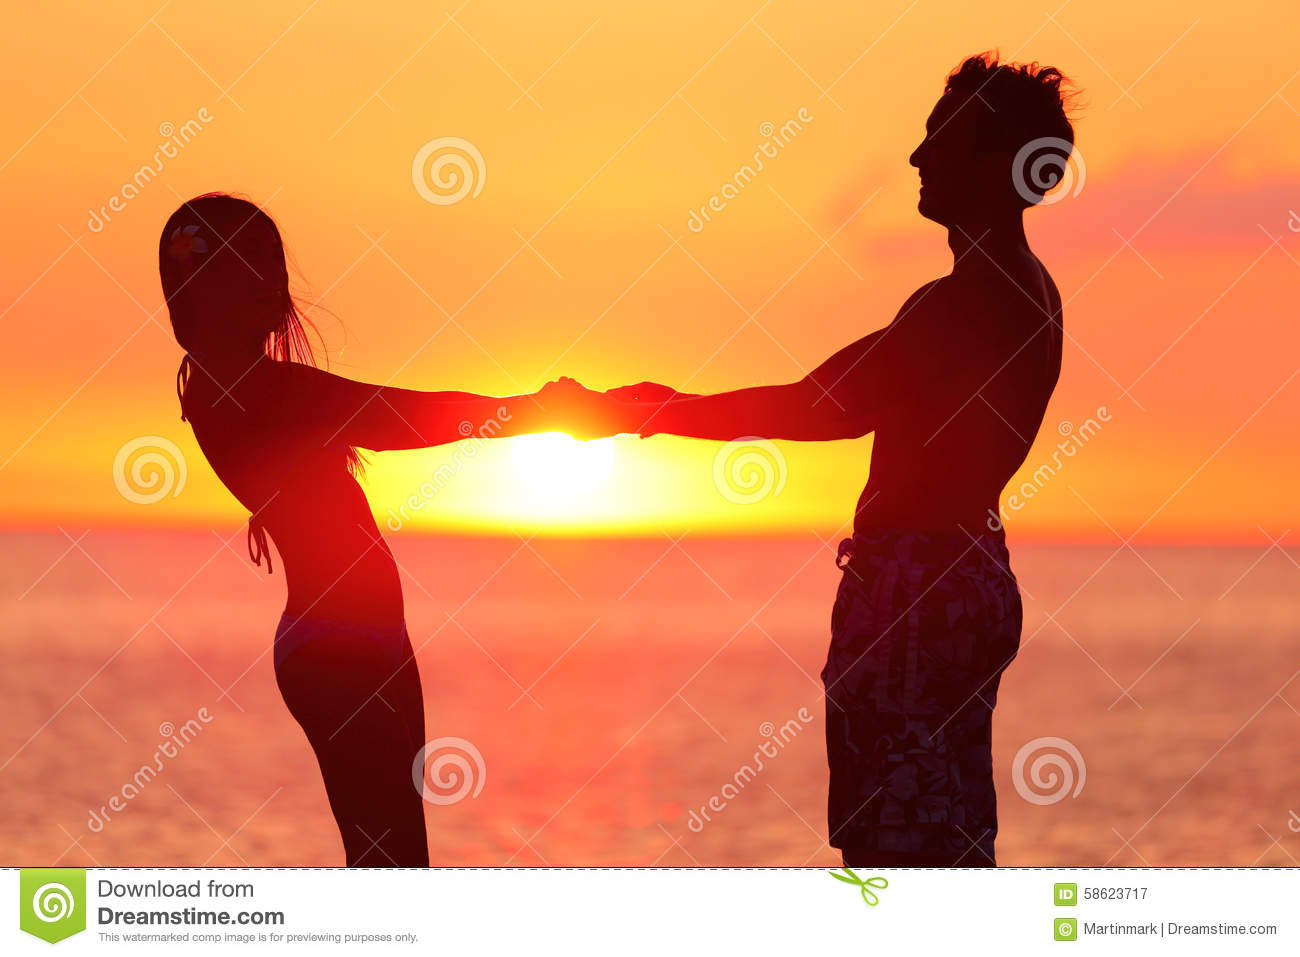 Couple Holding Hands At Beach During Sunset Stock Image - Image of ... for Couple Holding Hands Silhouette Sunset  56mzq